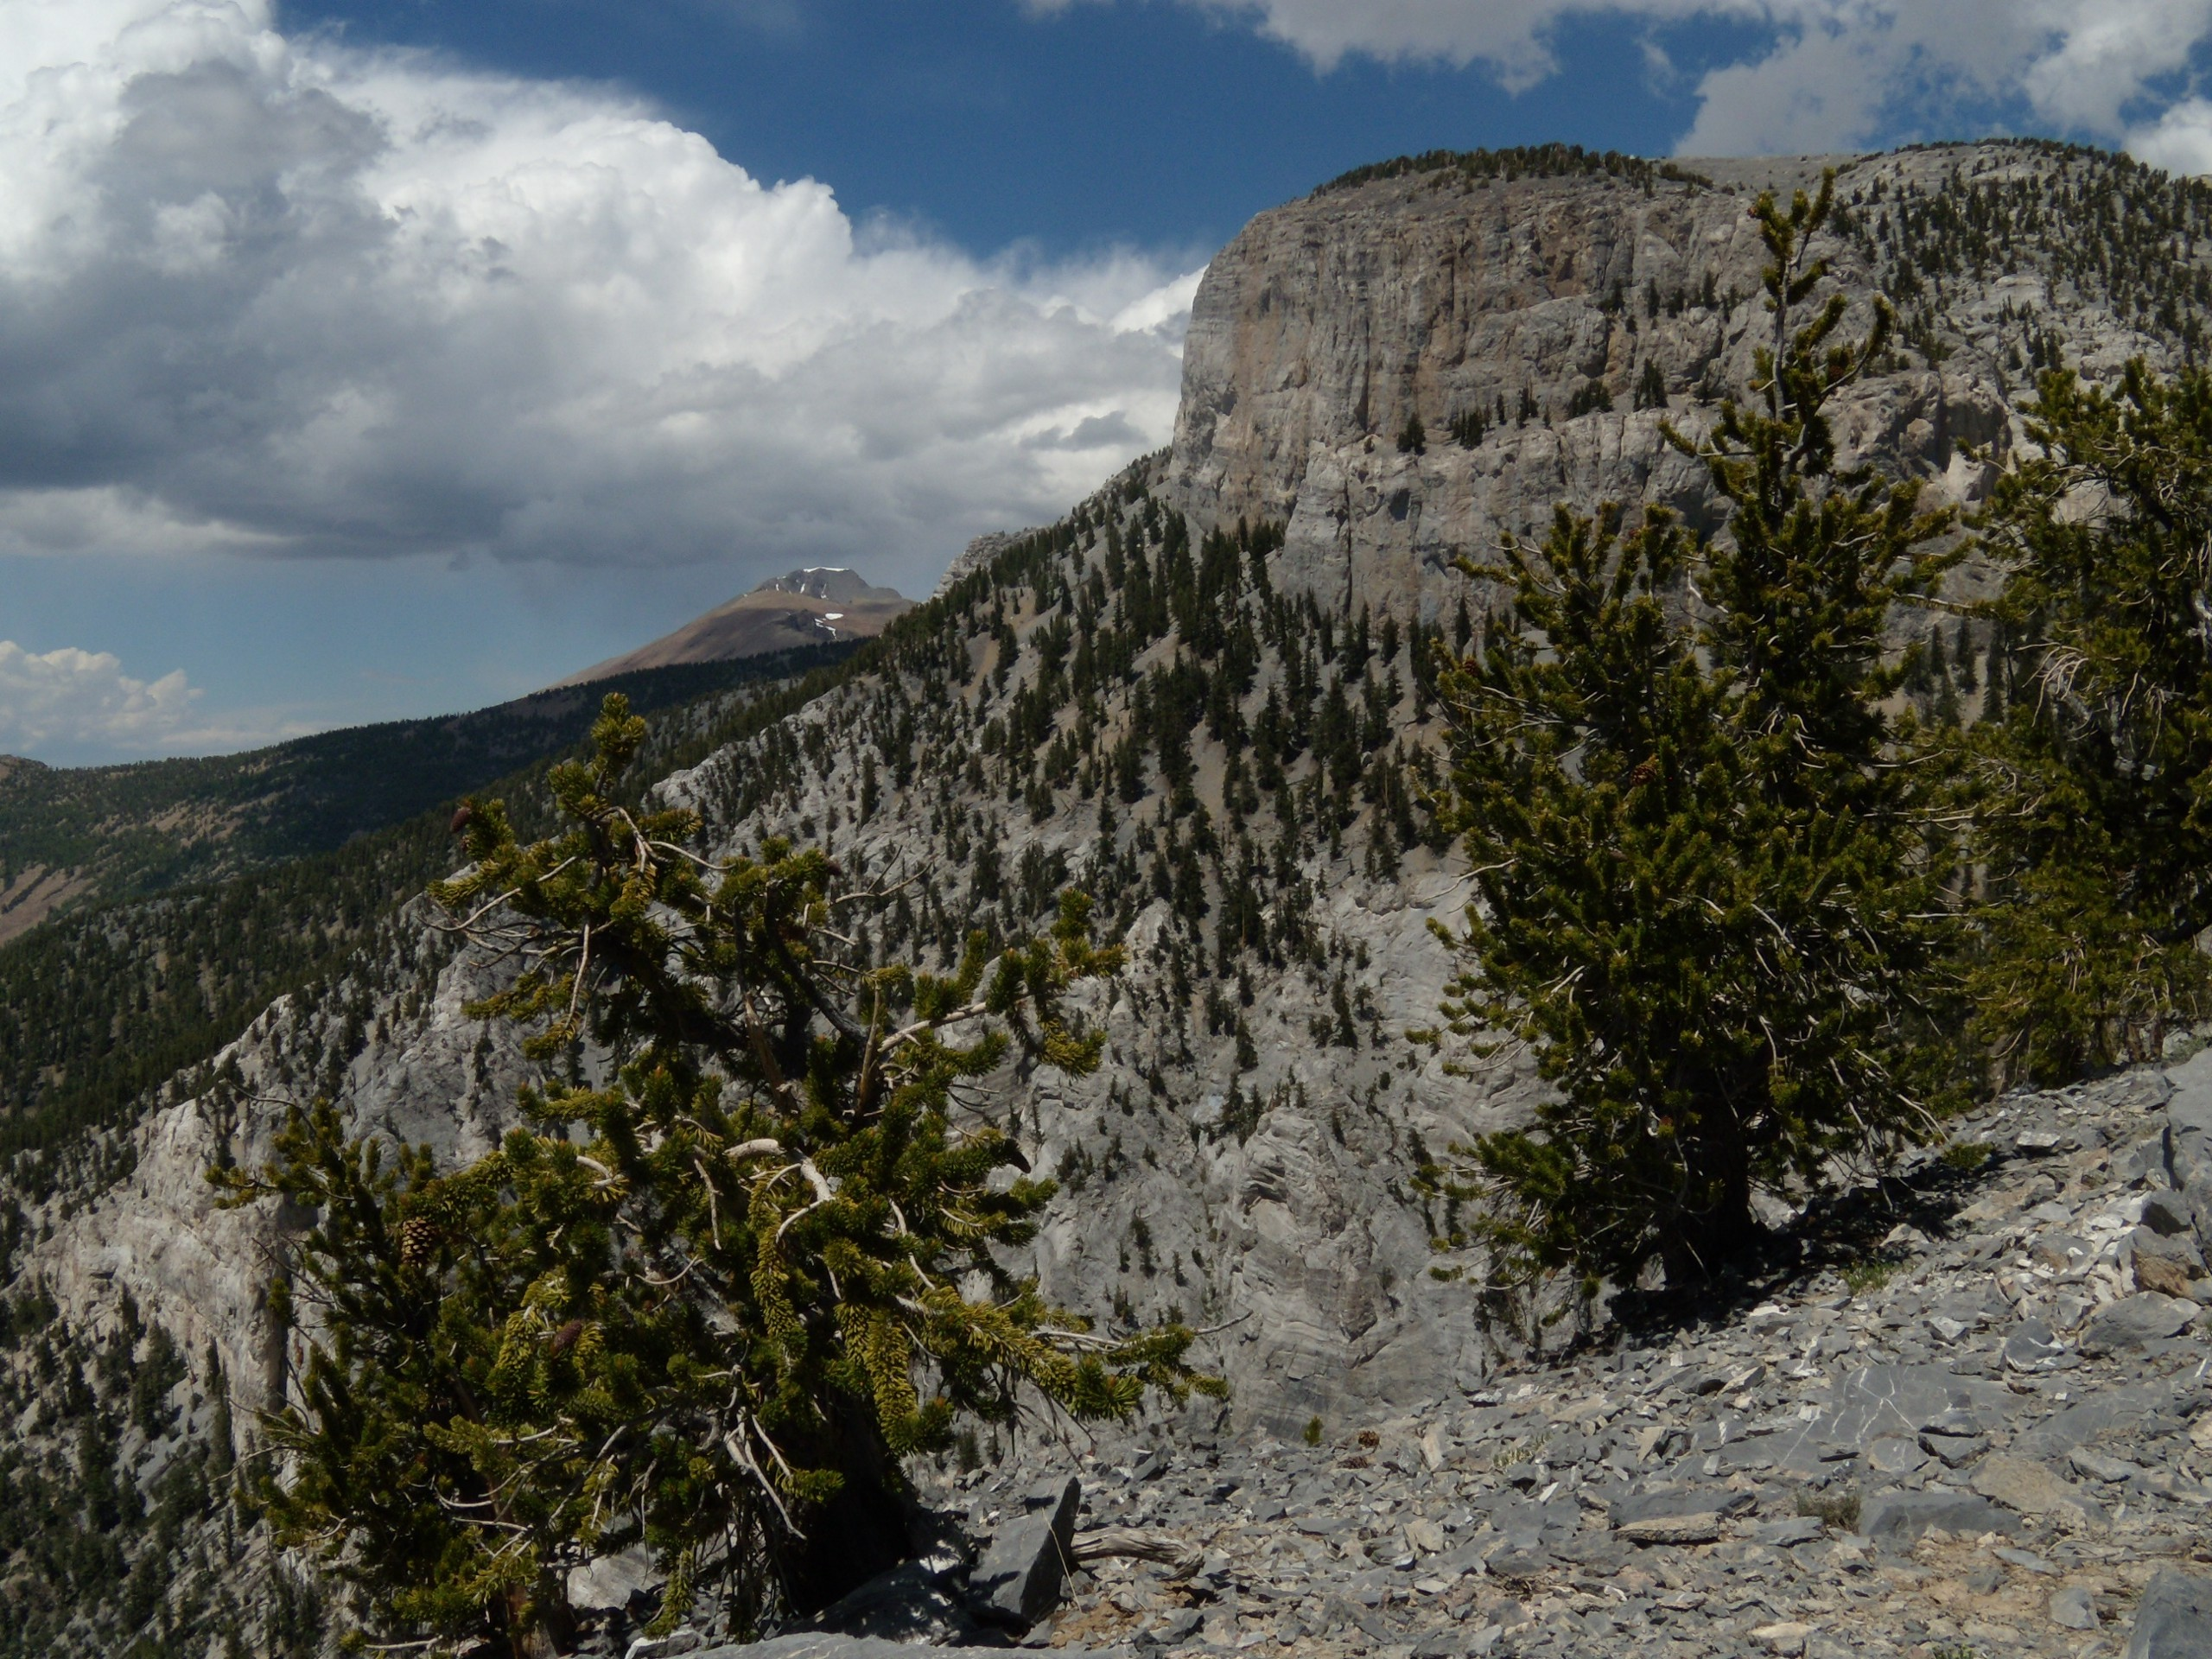 The Long Now Foundation and a Great Basin Mountain Observatory for Long Science